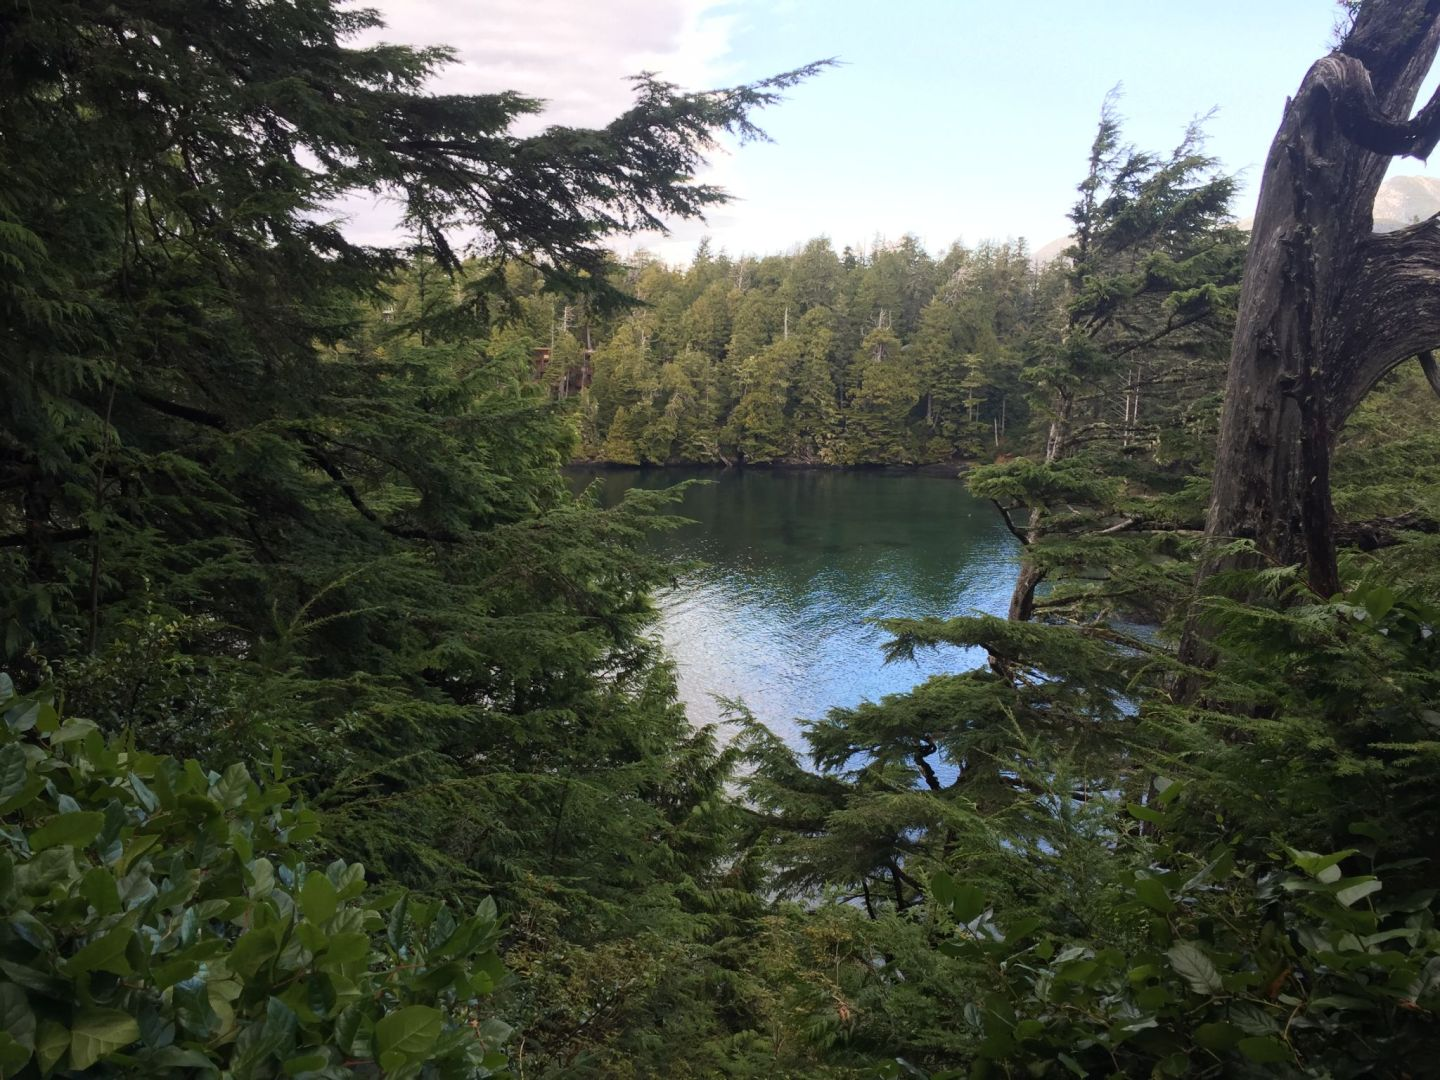 A lookout point from the Wild Pacific Trail, Ucluelet